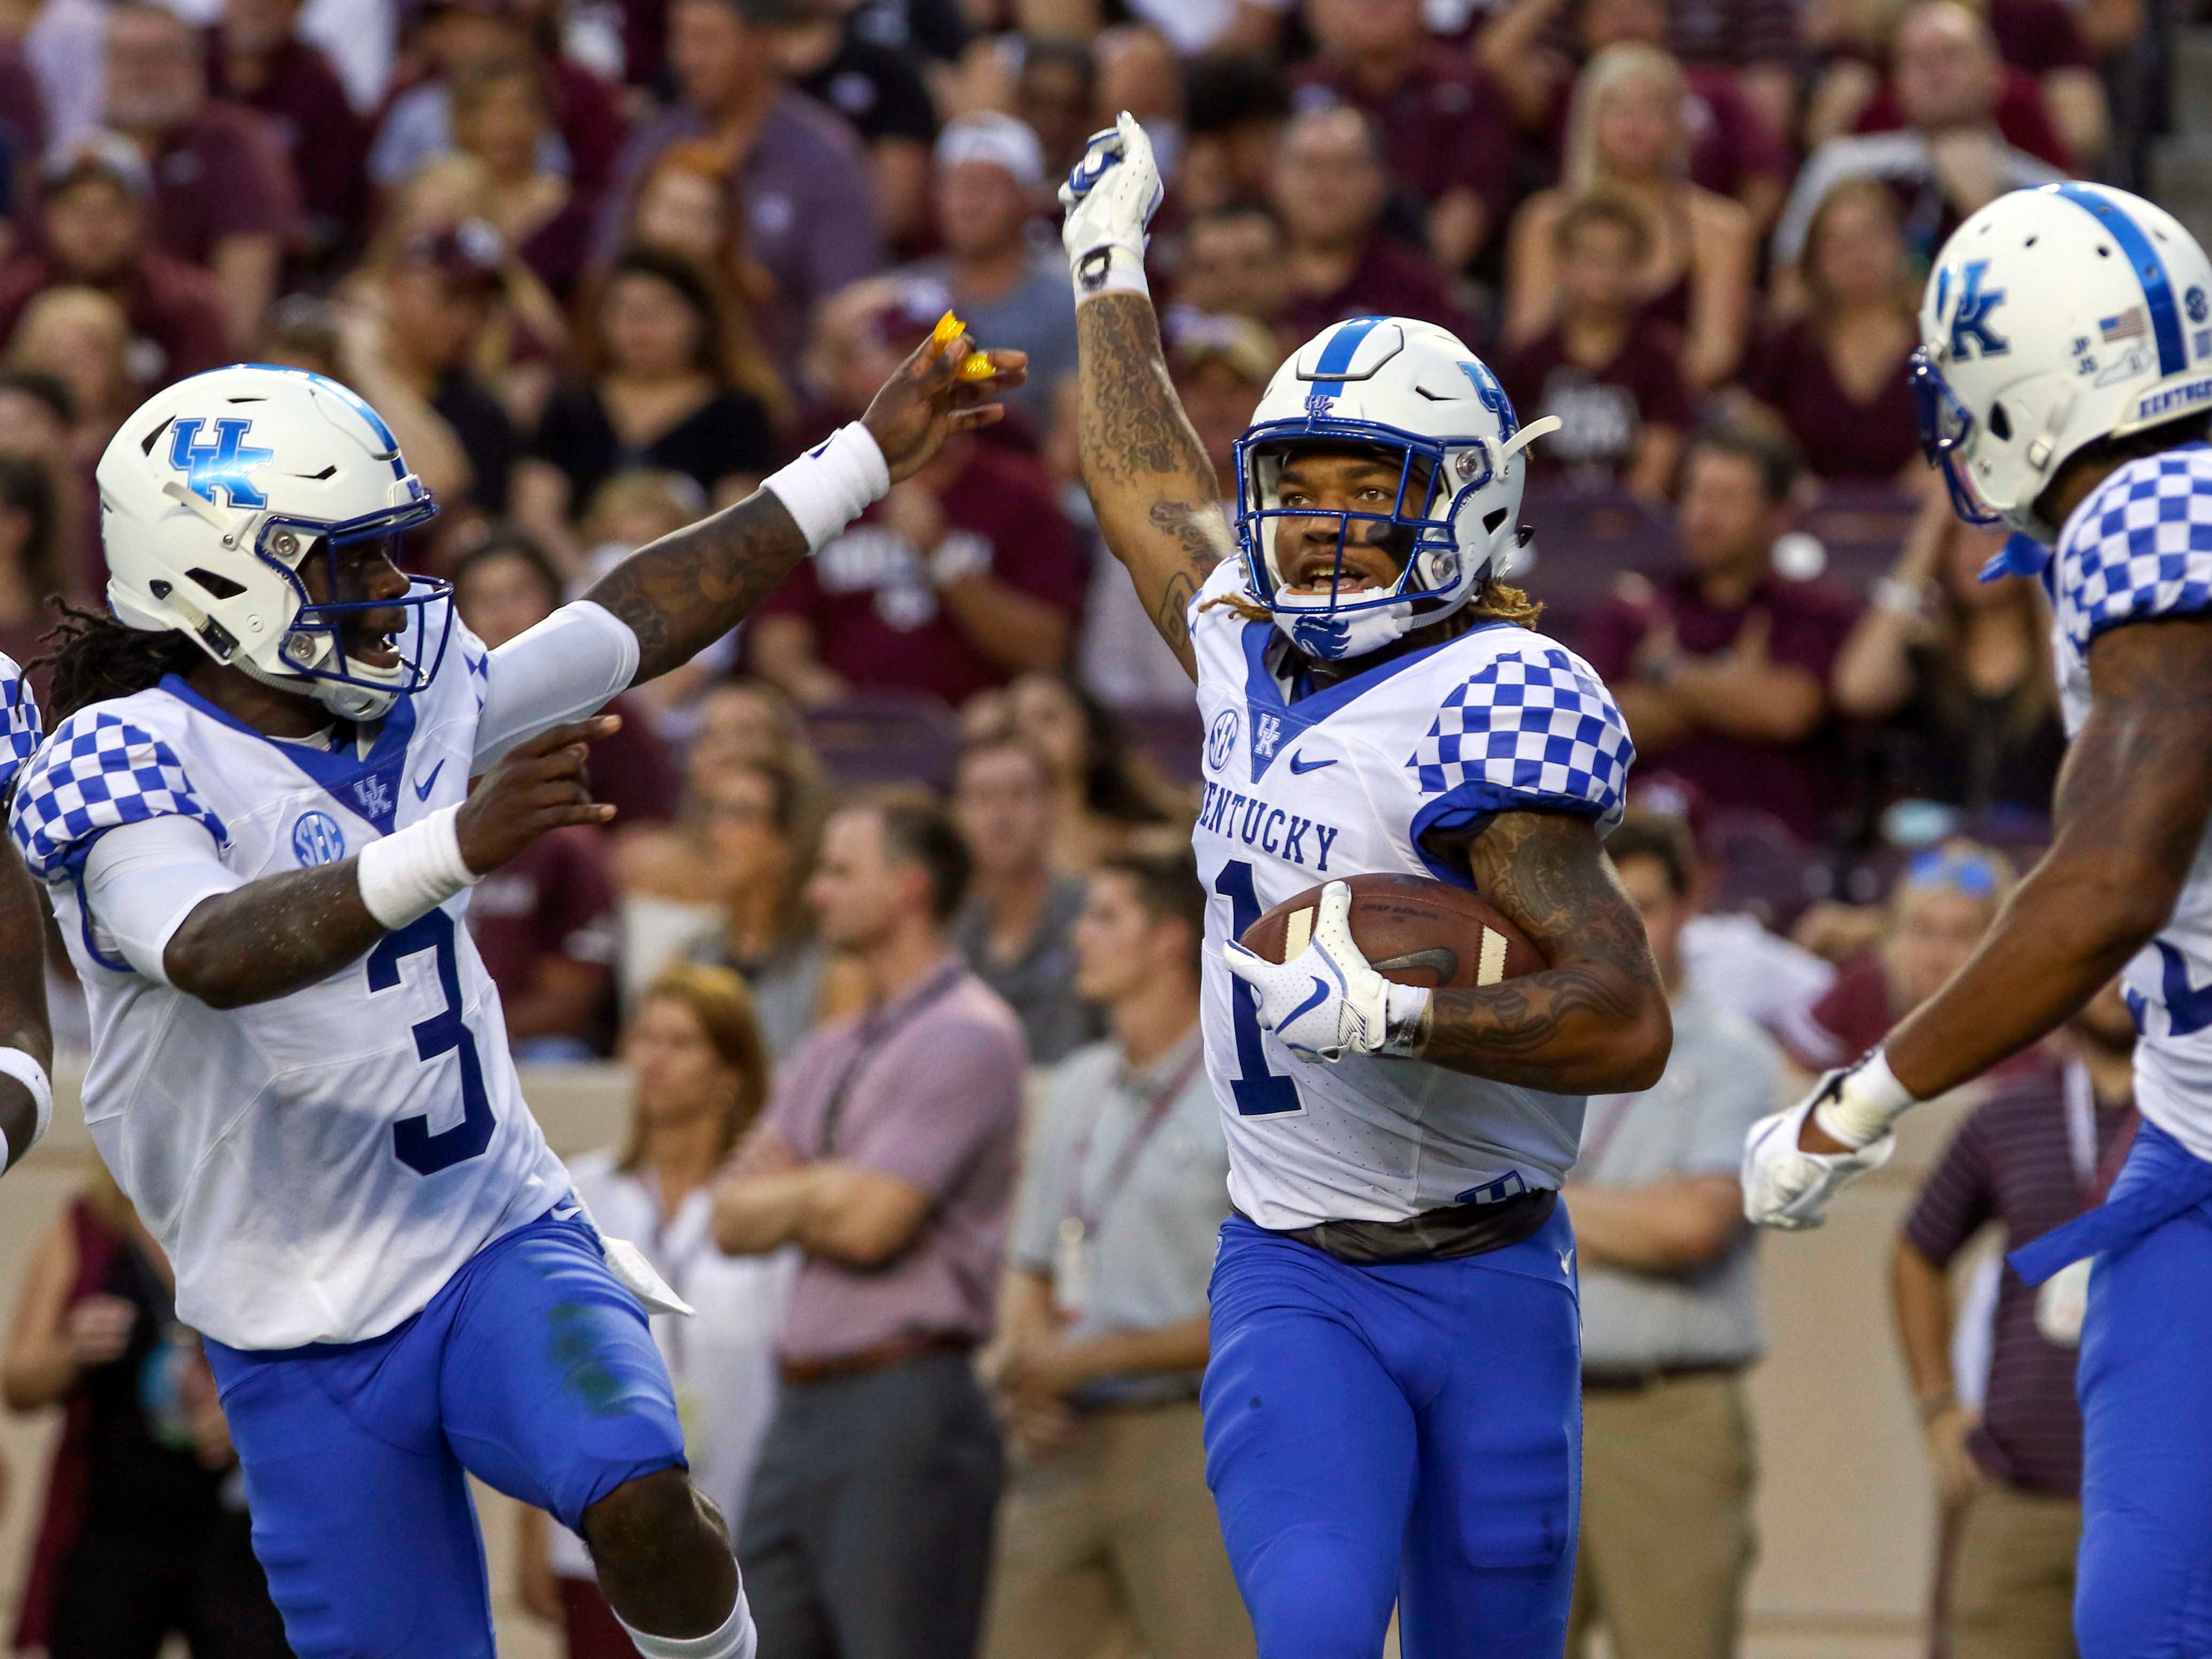 Oct 6, 2018; College Station, TX, USA; Kentucky Wildcats wide receiver Lynn Bowden Jr. (1) celebrates a touchdown with quarterback Terry Wilson (3) and wide receiver Tavin Richardson (11) during the first quarter against the Texas A&M Aggies at Kyle Field.